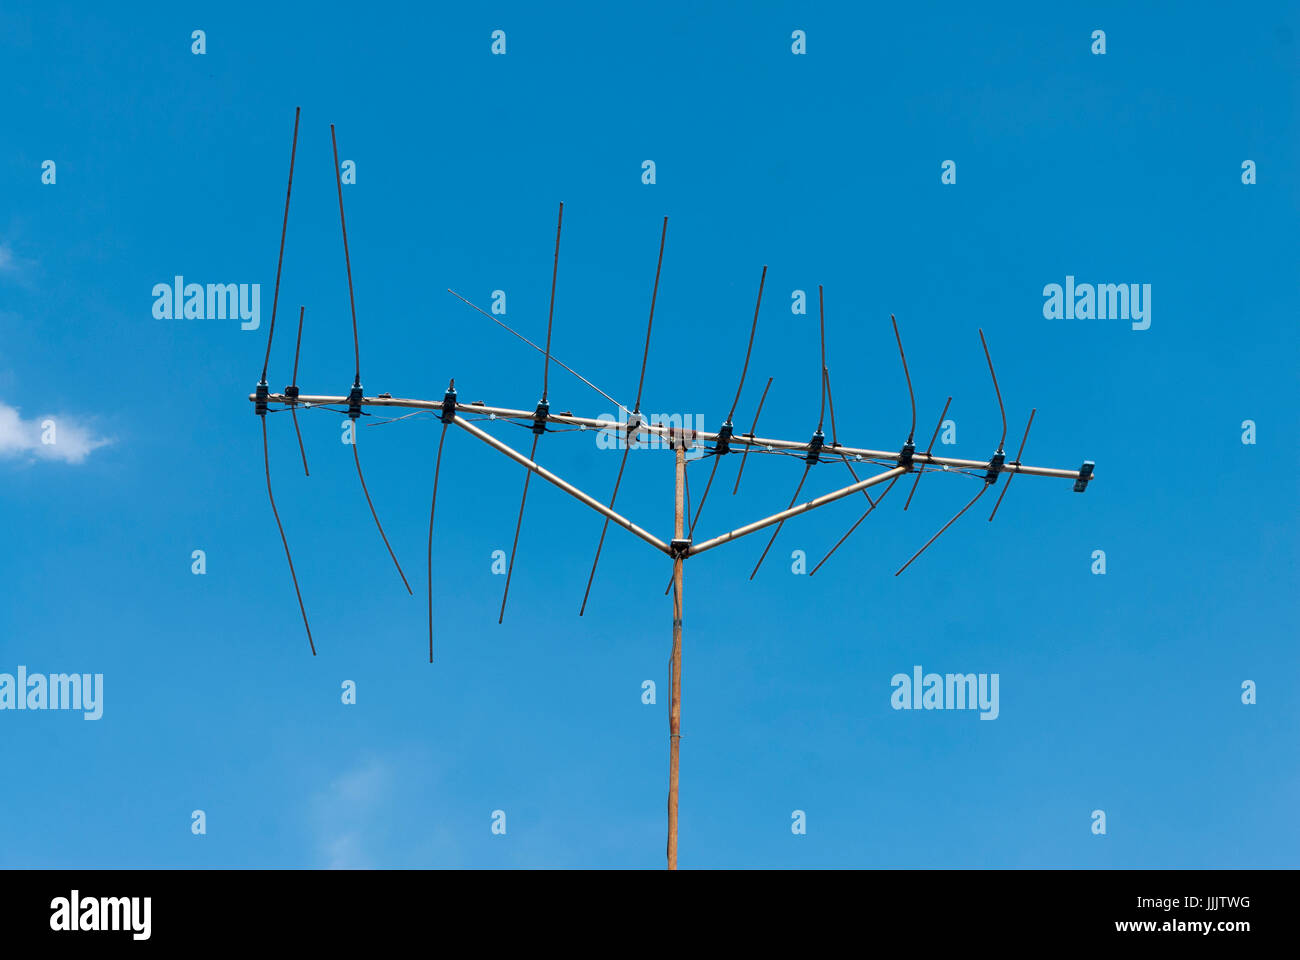 Old Tv Antenna Stock Photos Images Alamy Wire Diagram On Roof Of House Latin America Image